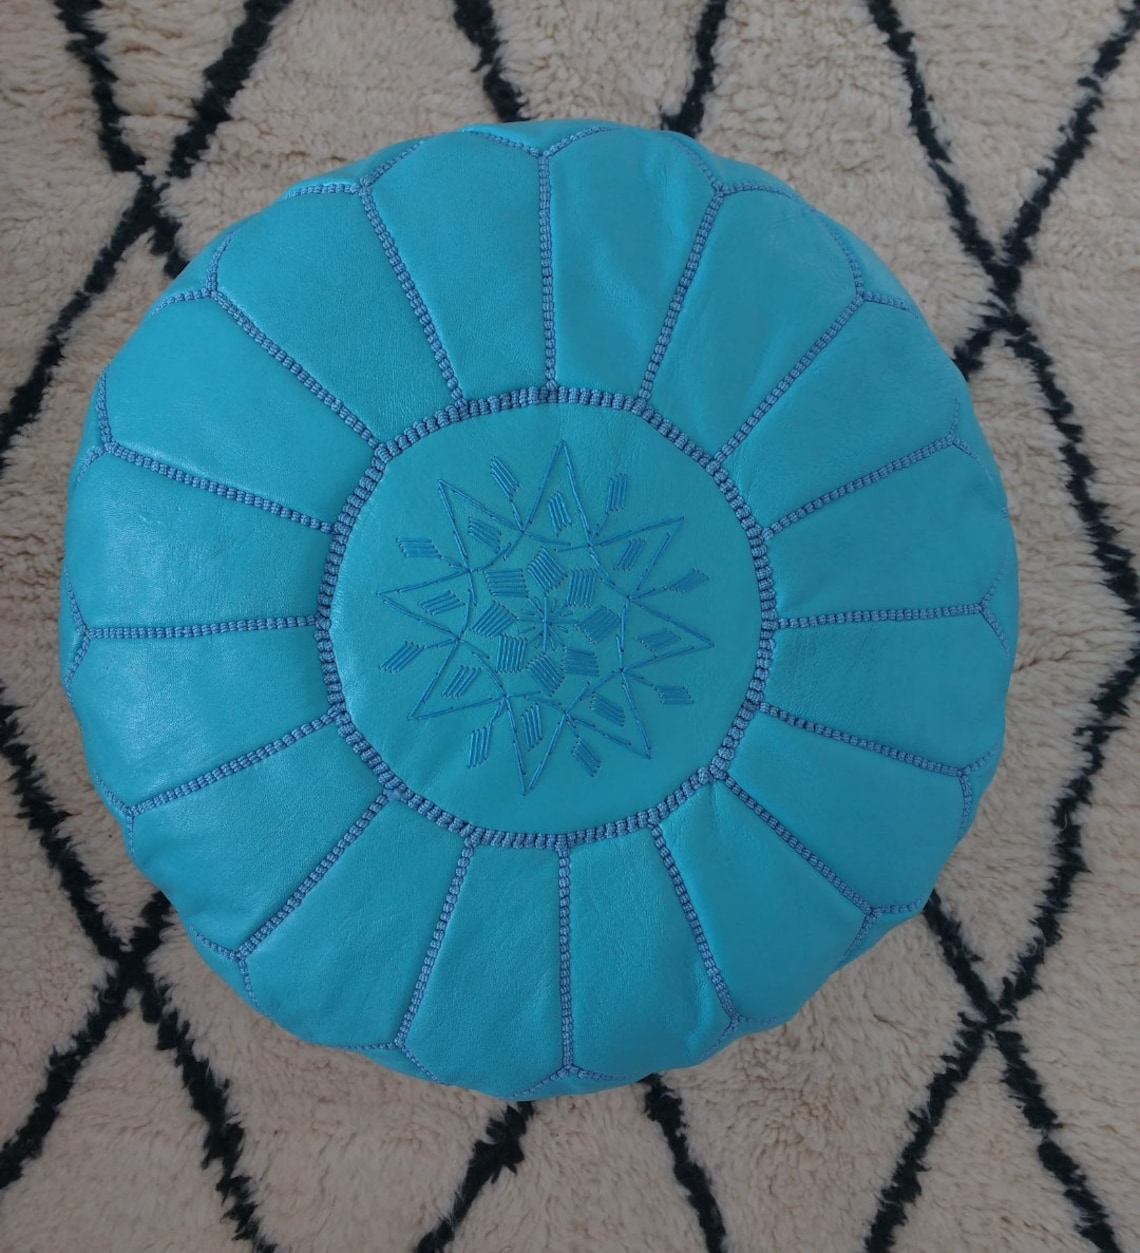 Morocco Leather pouf, blue turquoise decoration leather pouf, Living room leather removable footstool, Ottoman leather cushions, boho pouf